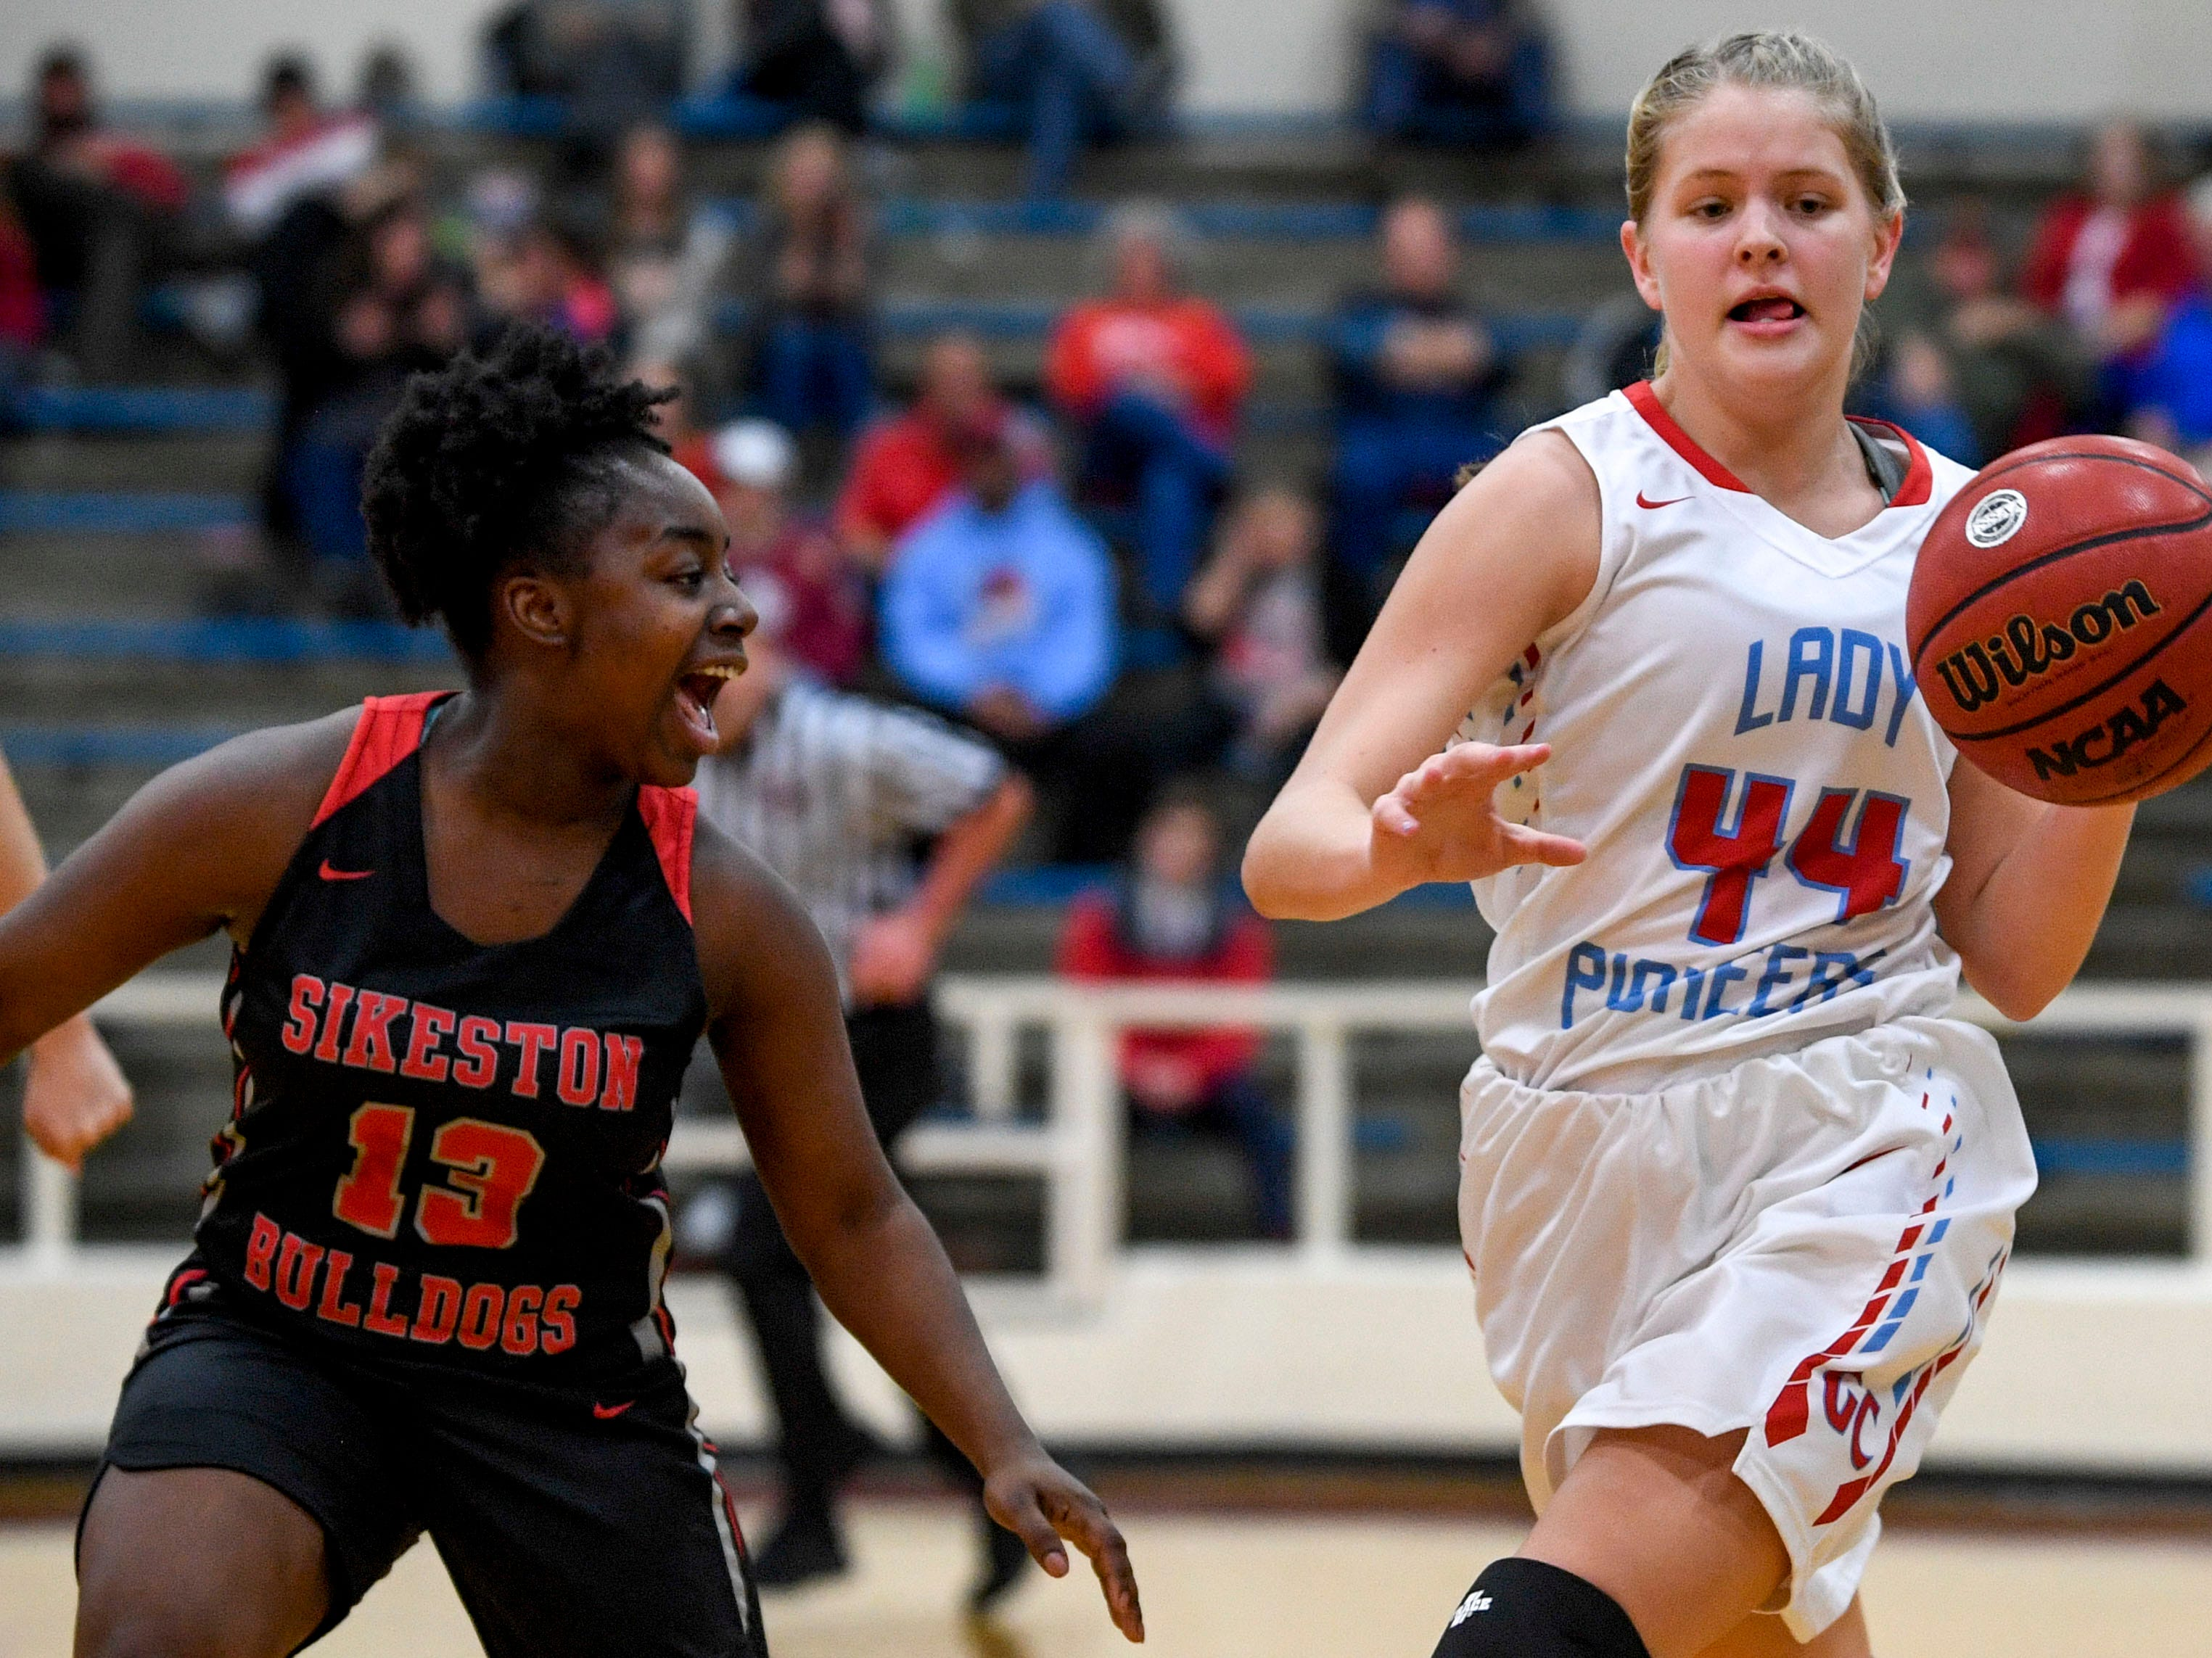 Gibson County's Ayden Carroll (44) moves down the court in a TSSAA girls basketball game between Gibson County and Sikeston (MO) in the Gibson County Christmas Tournament at Gibson County High School in Dyer, Tenn., on Thursday, Dec. 20, 2018.